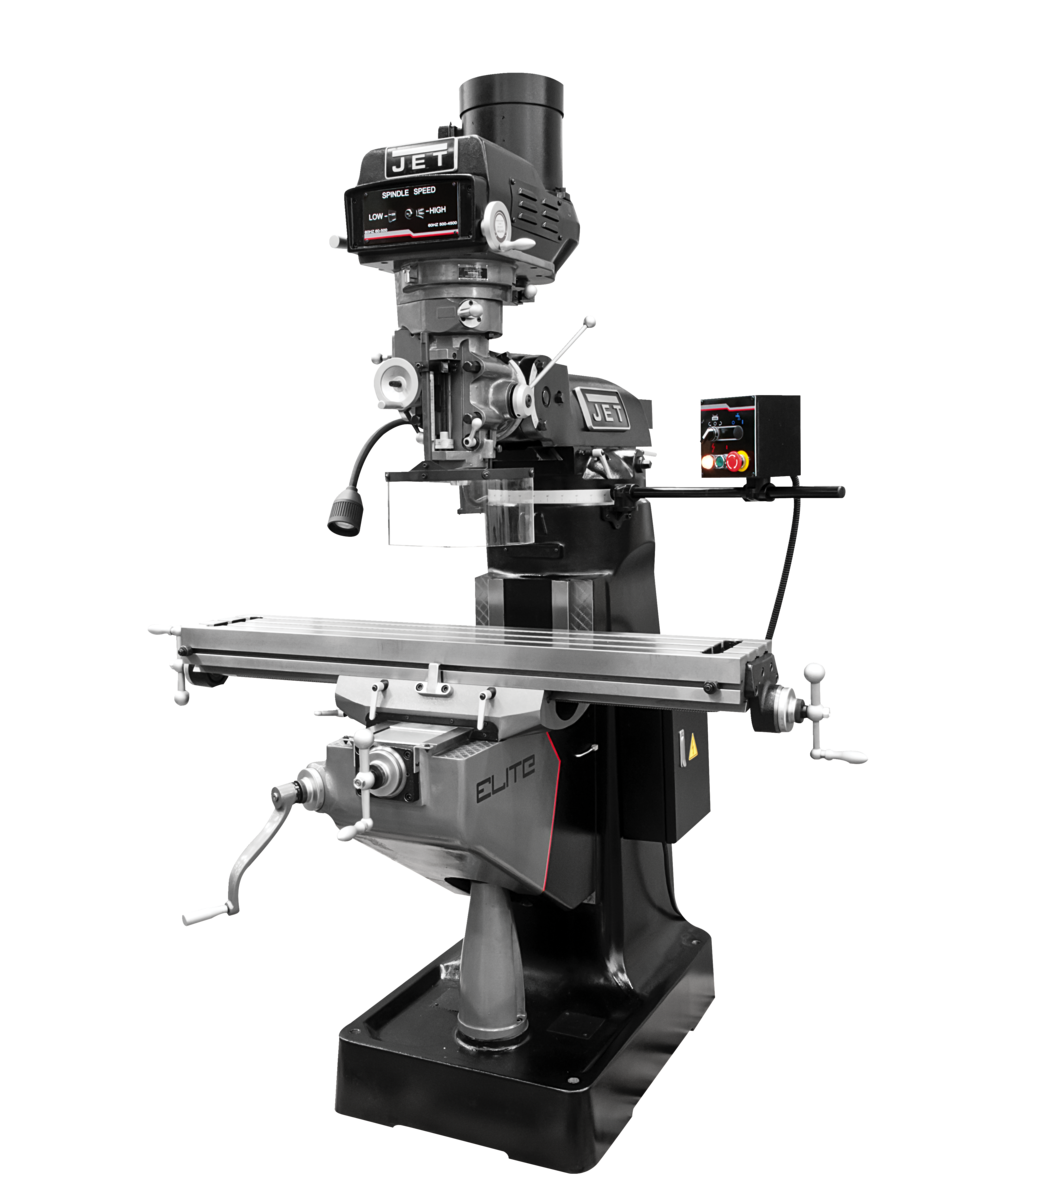 ETM-949 Mill with 3-Axis ACU-RITE 303  (Quill) DRO and X, Y-Axis JET Powerfeeds and USA Made Air Draw Bar